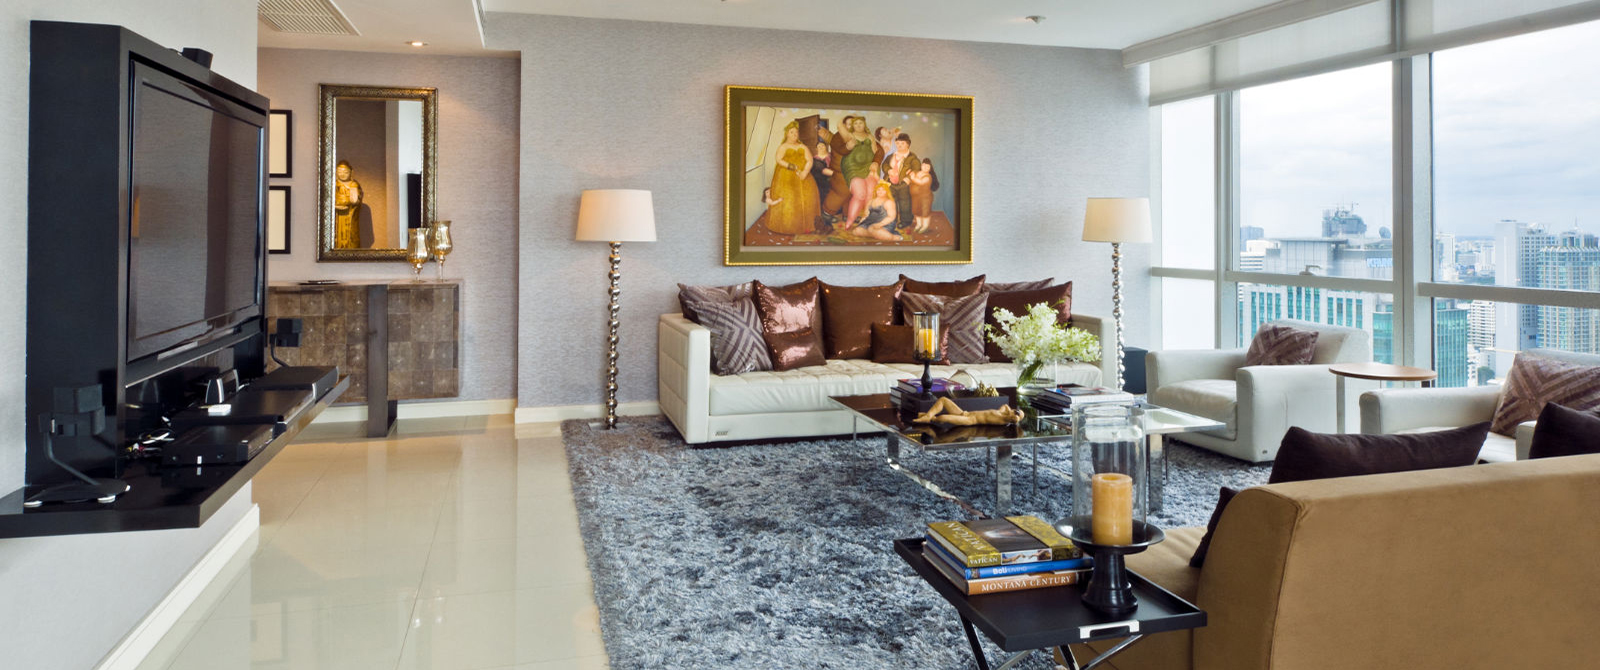 This condo unit was created by the famous designer Modern and well designed